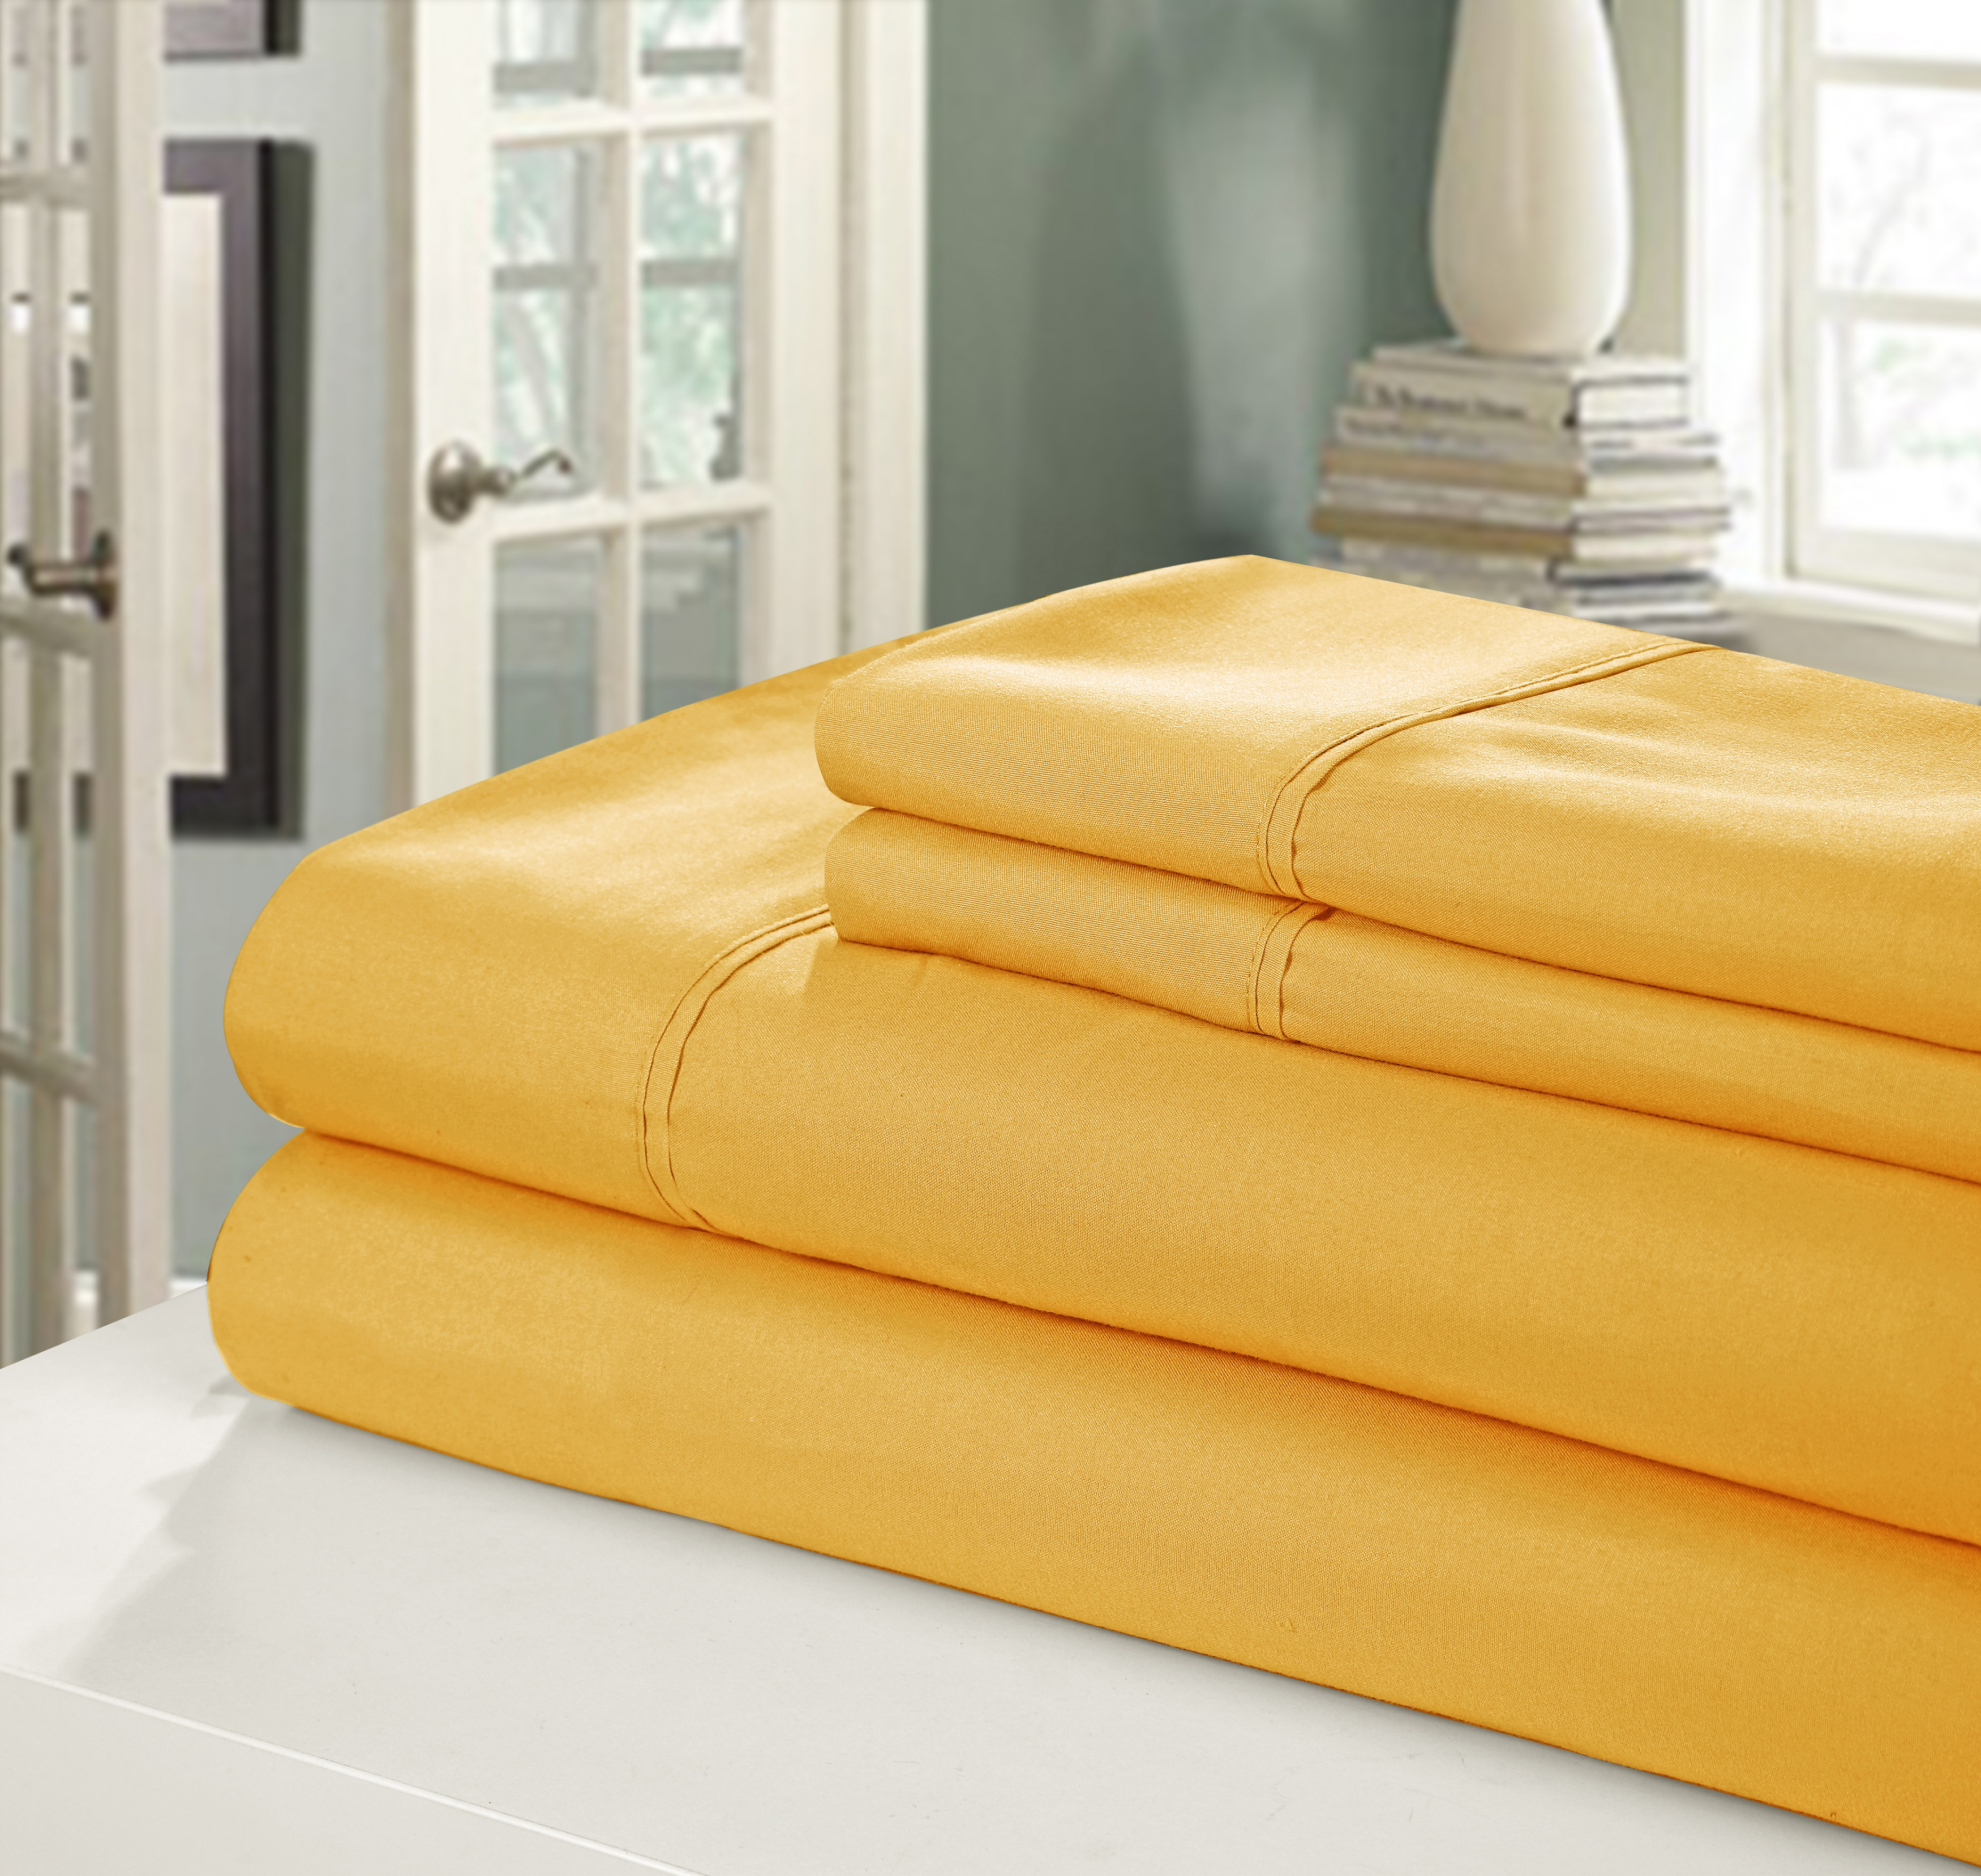 Chic Home NEW!! Chic Home 400 Series Peach Skin Microfiber 4-Piece Sheet Set Ensemble, Queen, Yellow